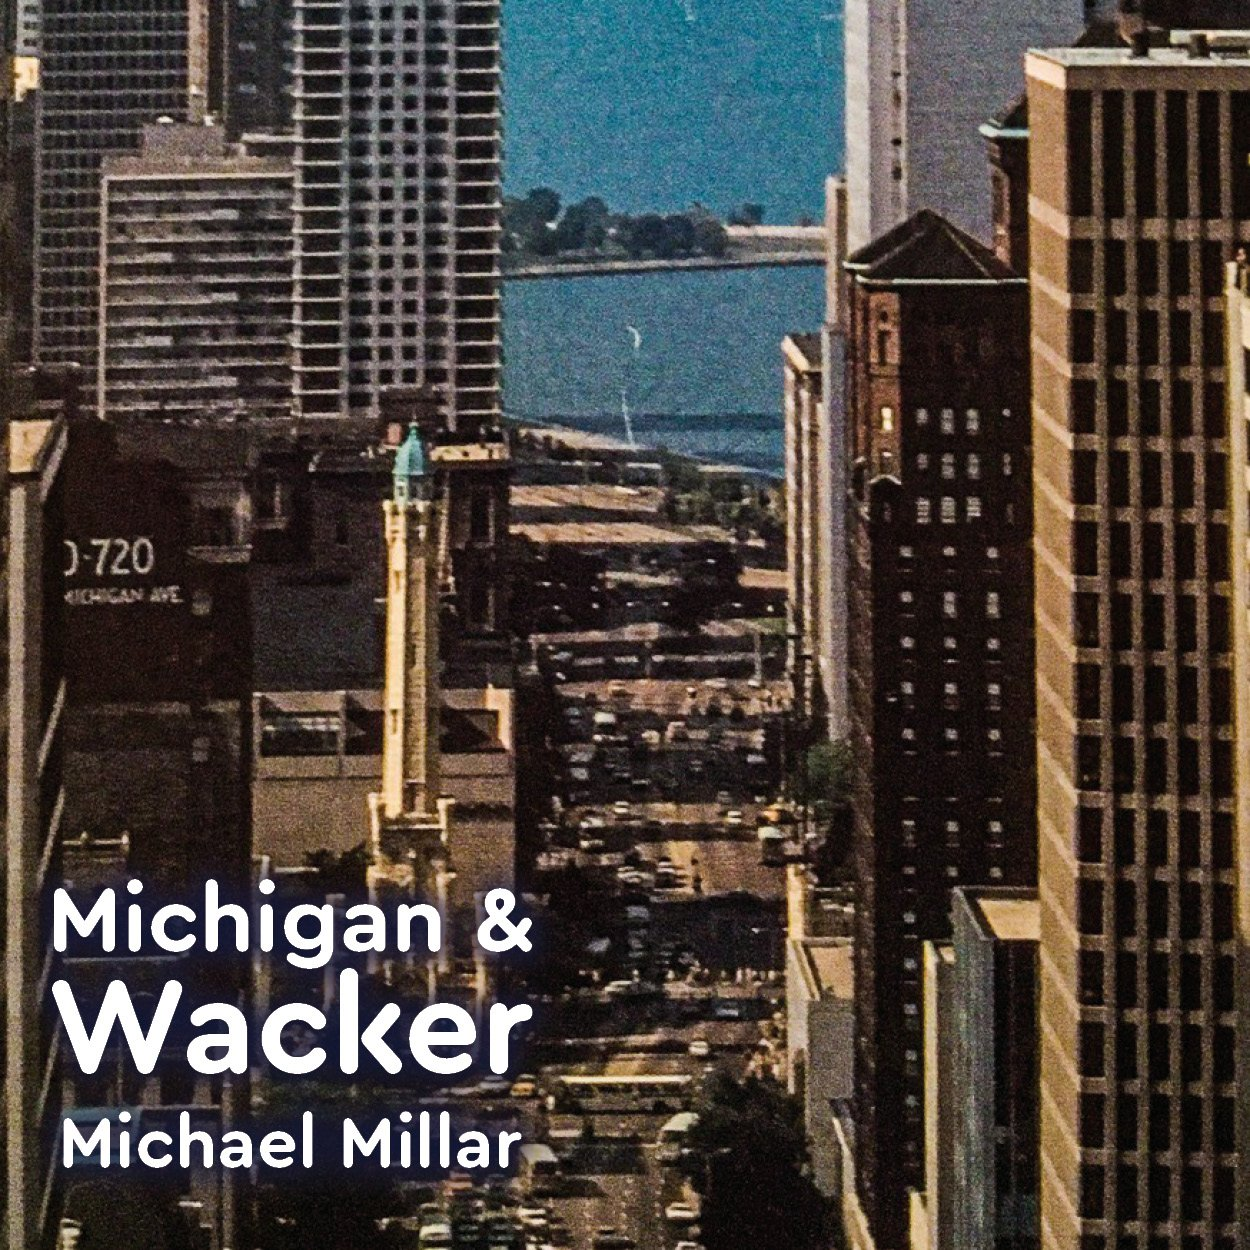 Michael Millar at Michigan & Wacker